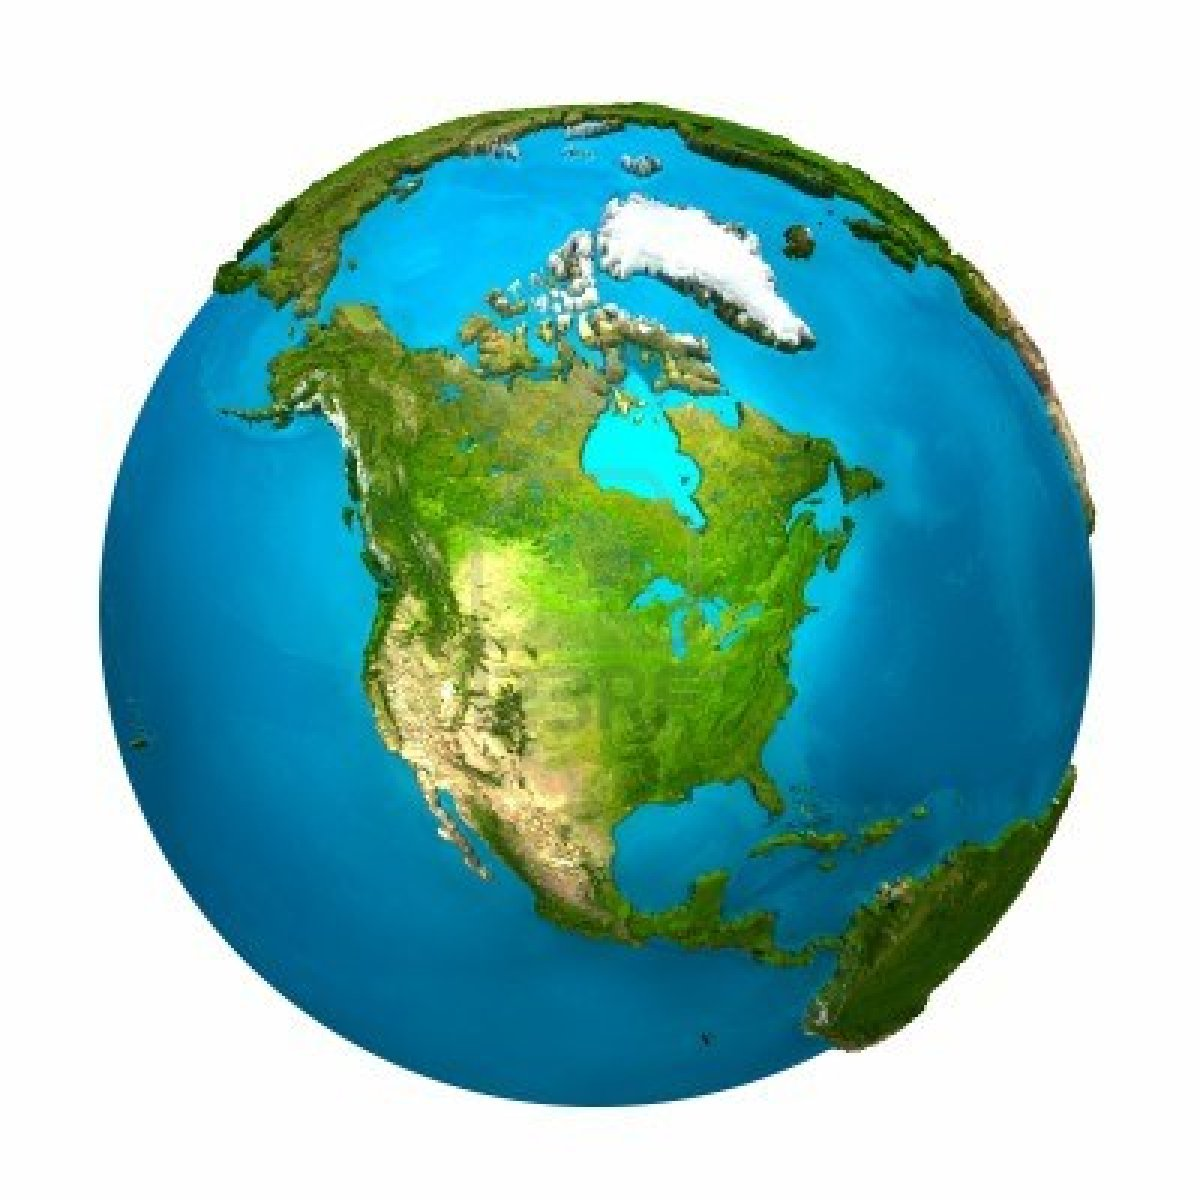 8552970-planet-earth--north-america--colorful-globe-with-detailed-and-realistic-surface-3d-render.jpg